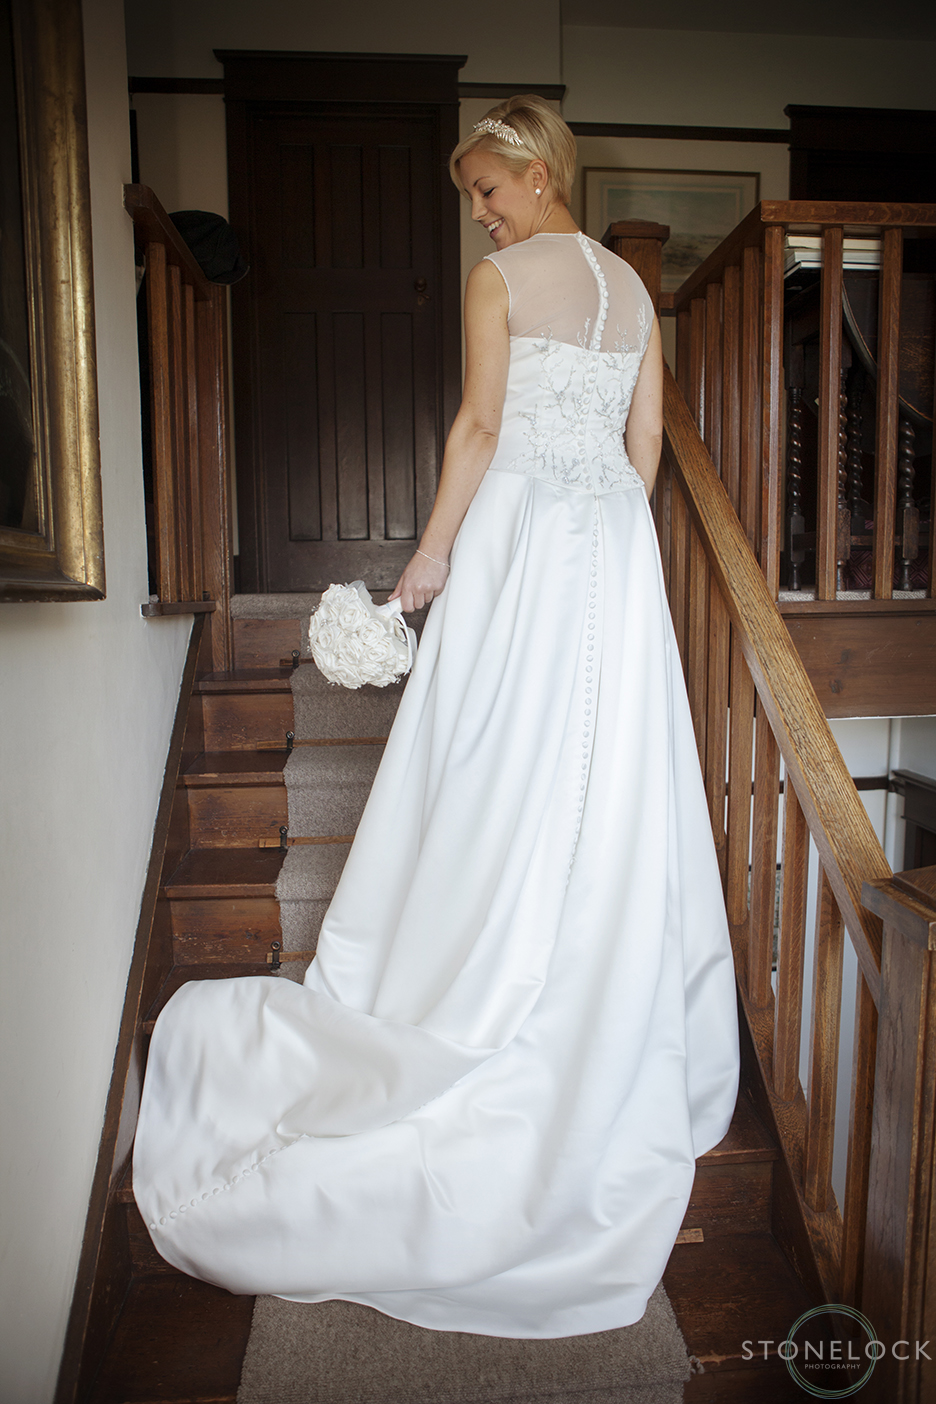 The bride stands on stairs in her wedding dress for some photos before her wedding